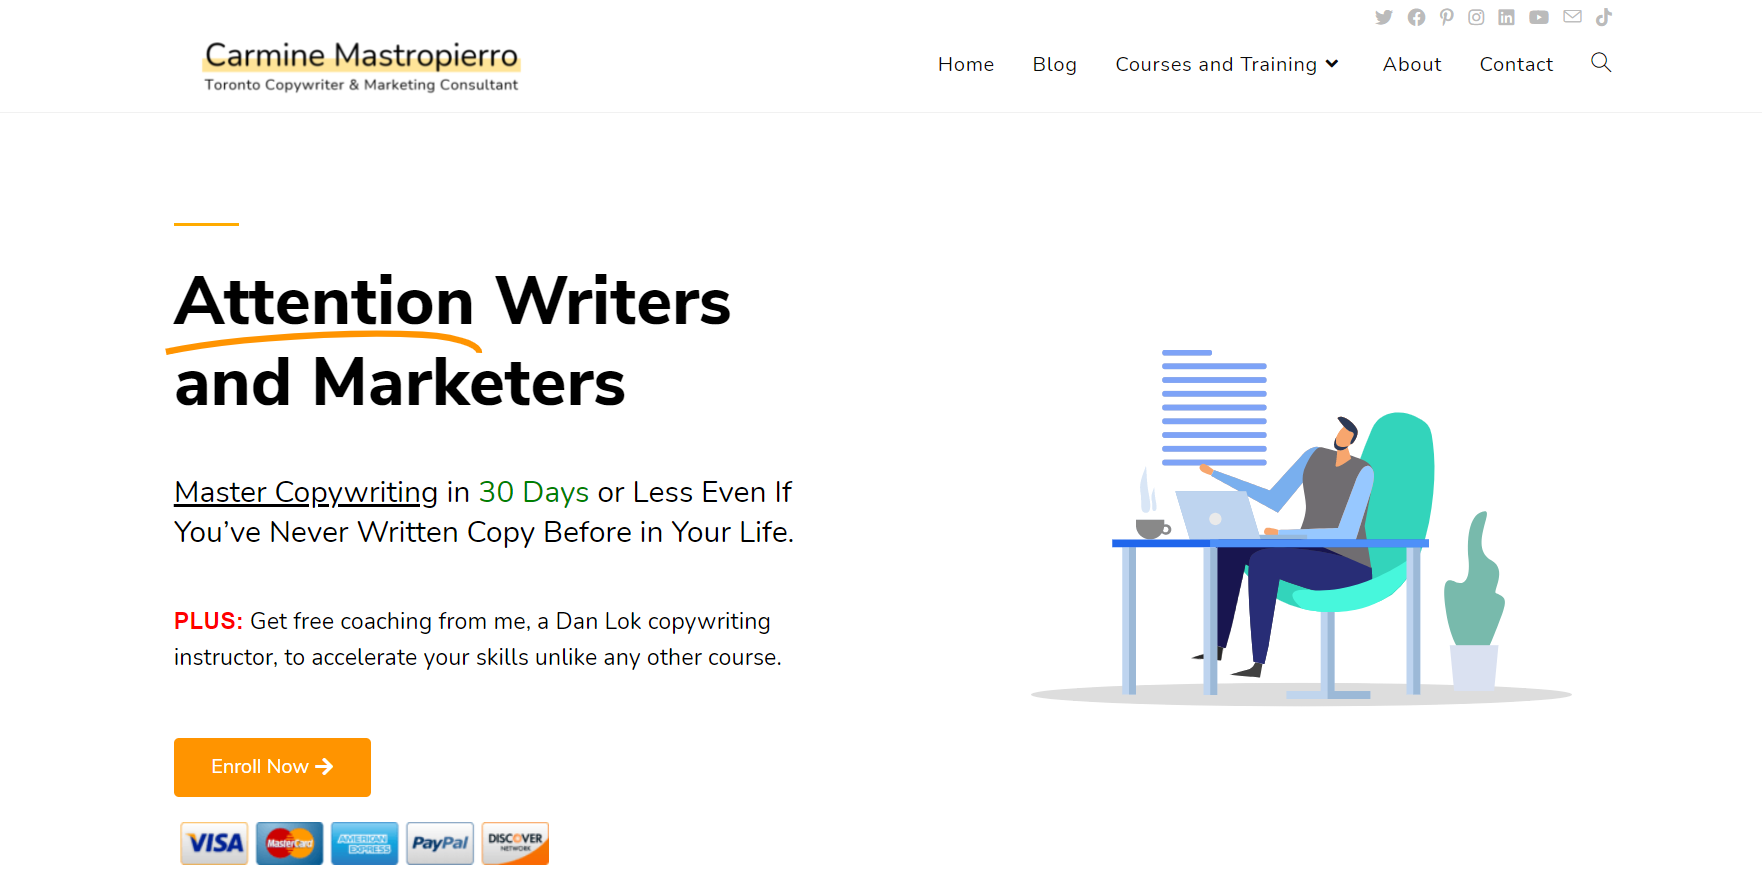 Copywriting Course to Master Copywriting in 30 days or less